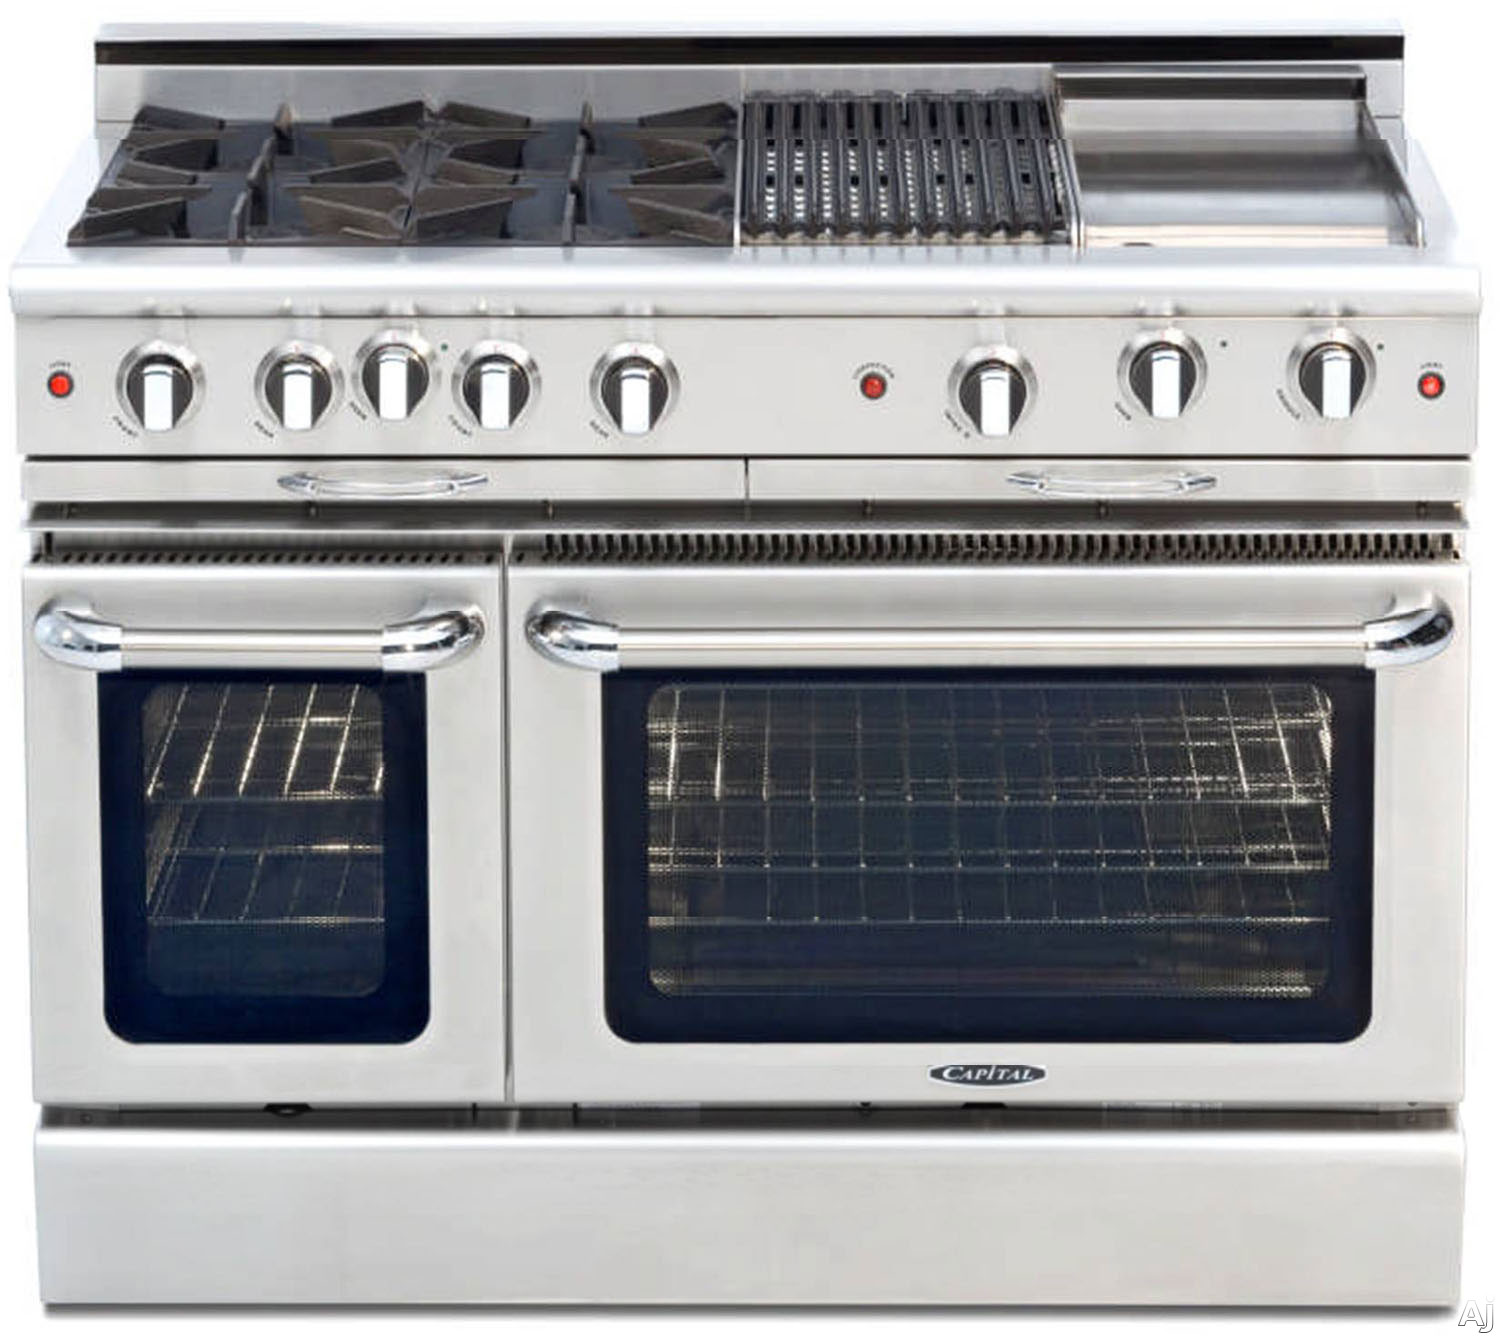 "Capital Culinarian Series CGSR482BG2 48 Inch Pro-Style Gas Range with 4 Open Burners, 12"""" Thermo-Griddle, 12"""" BBQ Grill, Self-Clean, Moto-Rotisâ""¢ Rotisserie, EZ-Glidesâ""¢ Drip Tray, Stay-Coolâ""¢ Knobs, 4.6 cu. ft. Primary Oven and 2.1 cu. ft. Secondar"